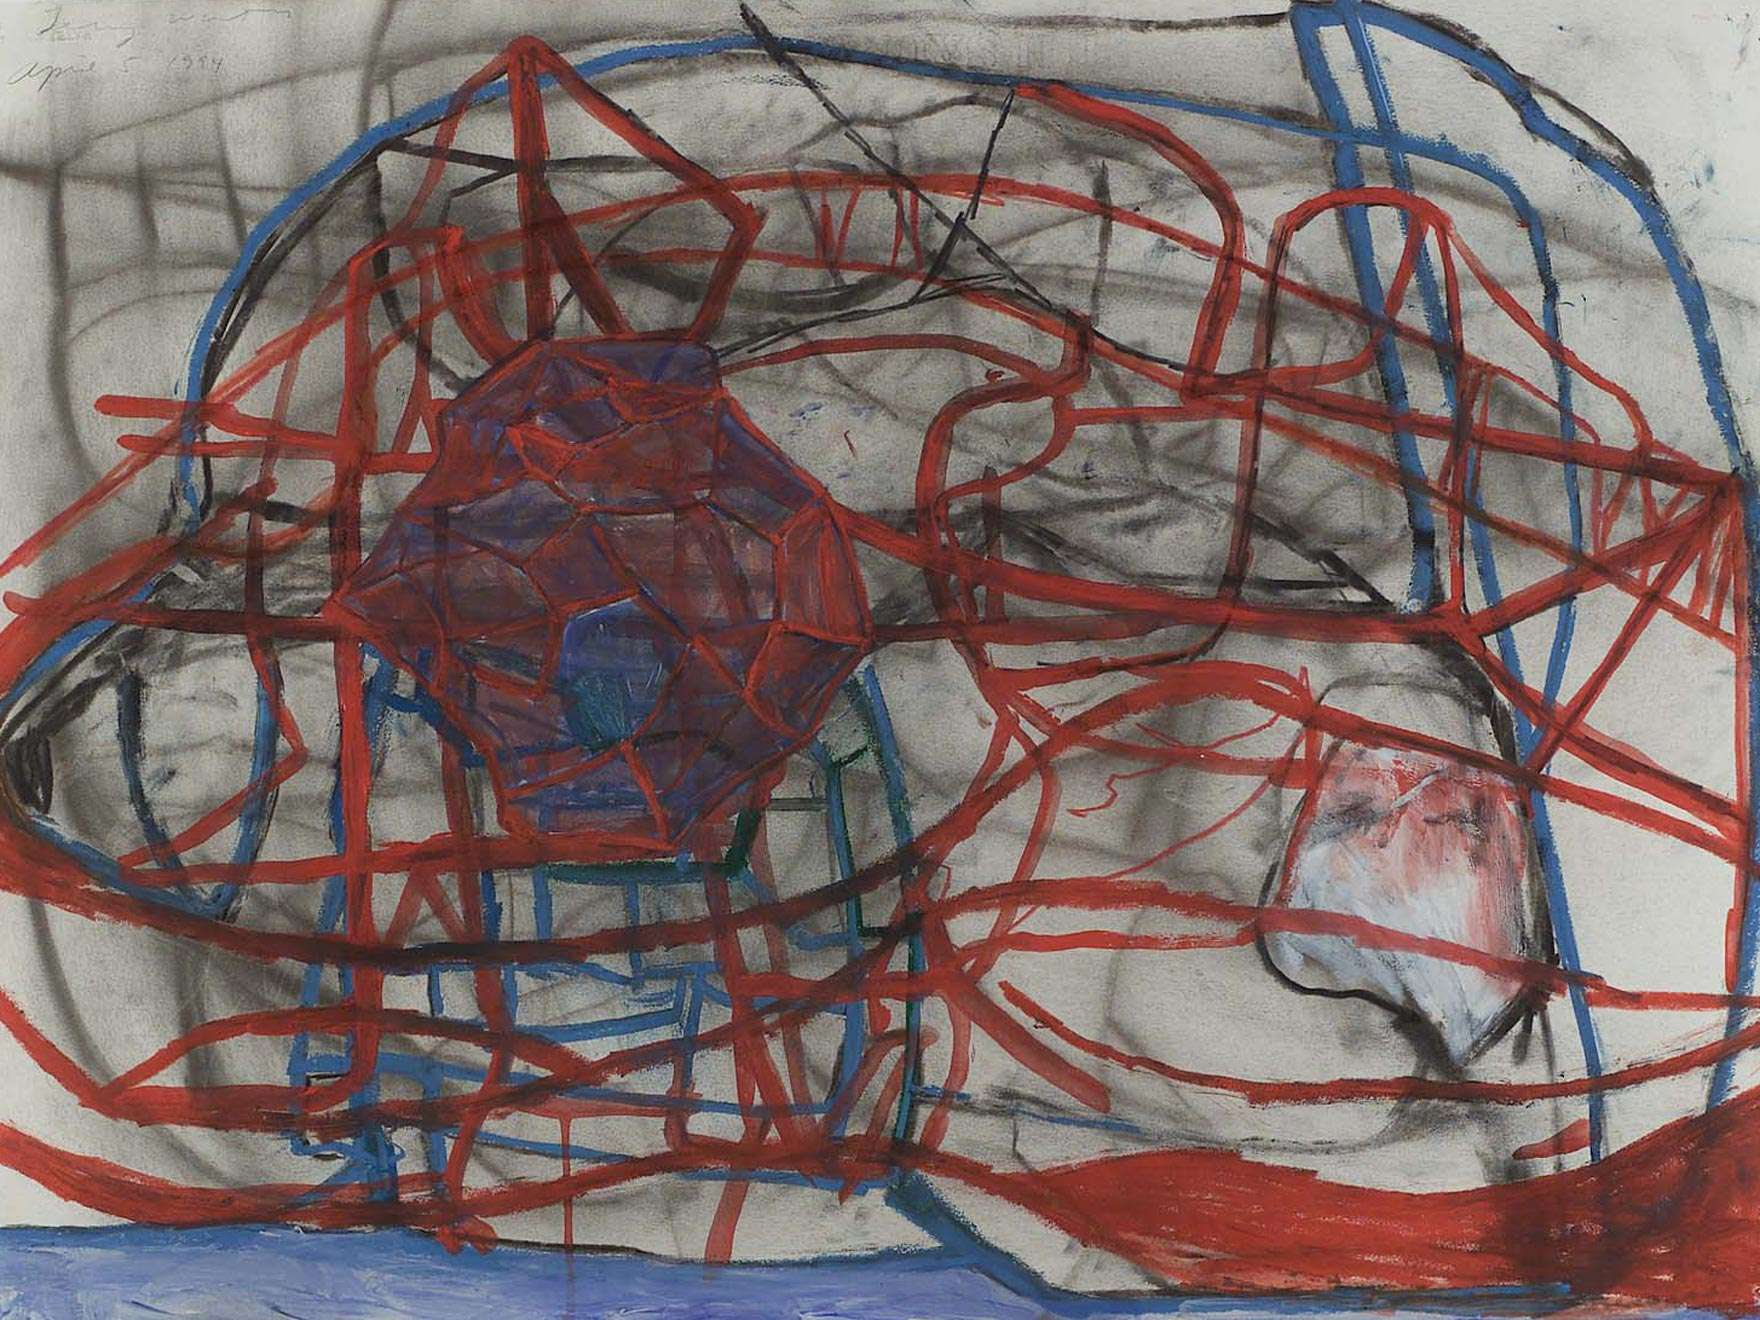 Terry Winters' untitled 1994 drawing